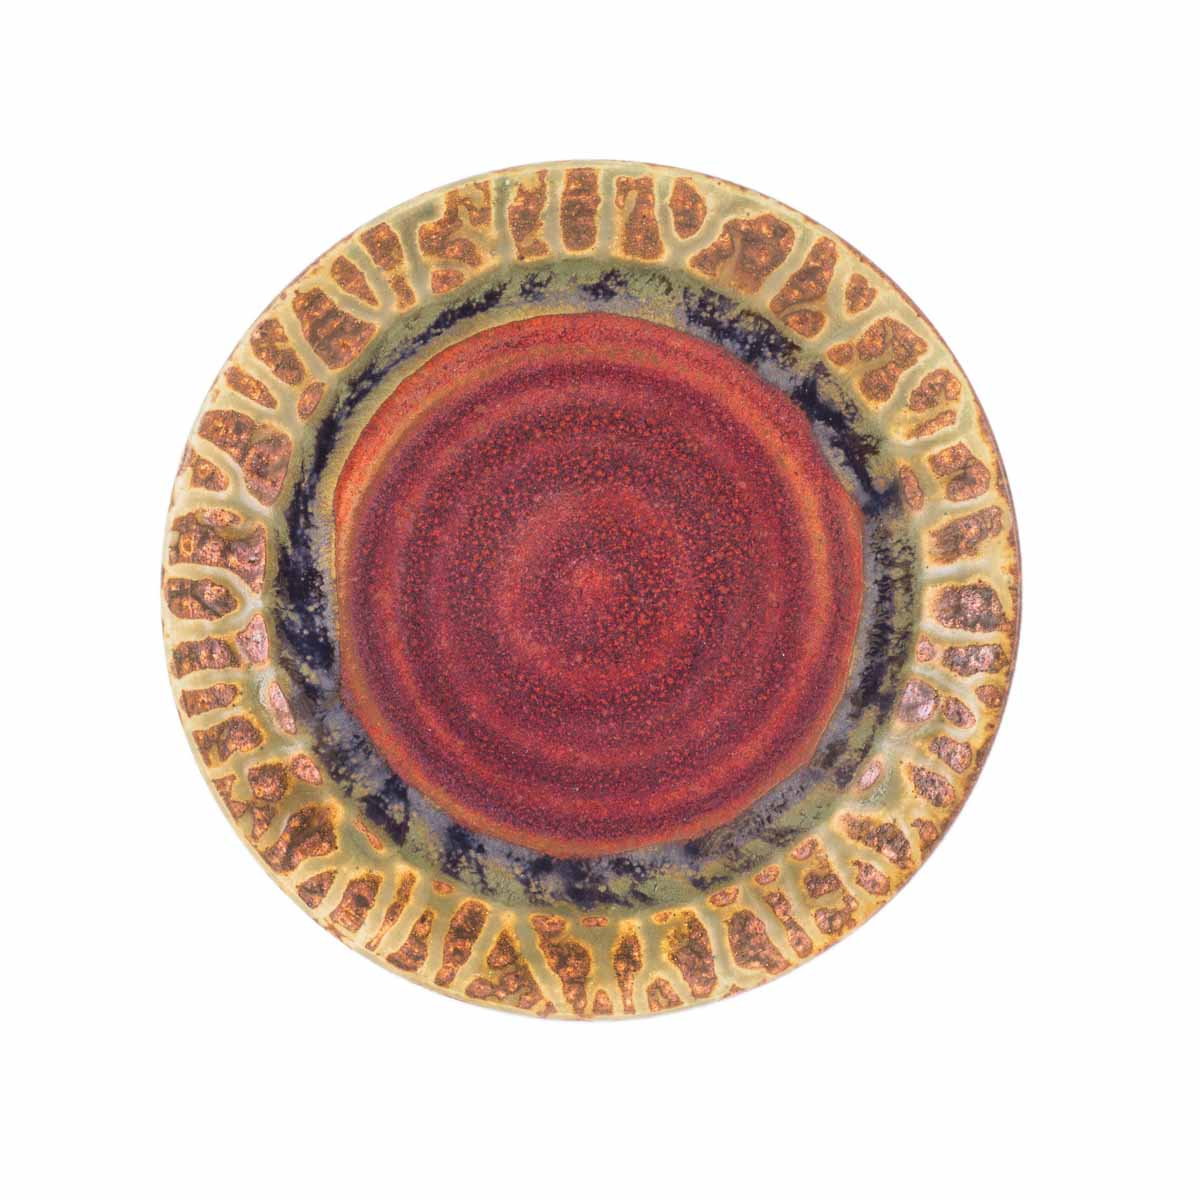 Green Ash Glaze Lunch Plate